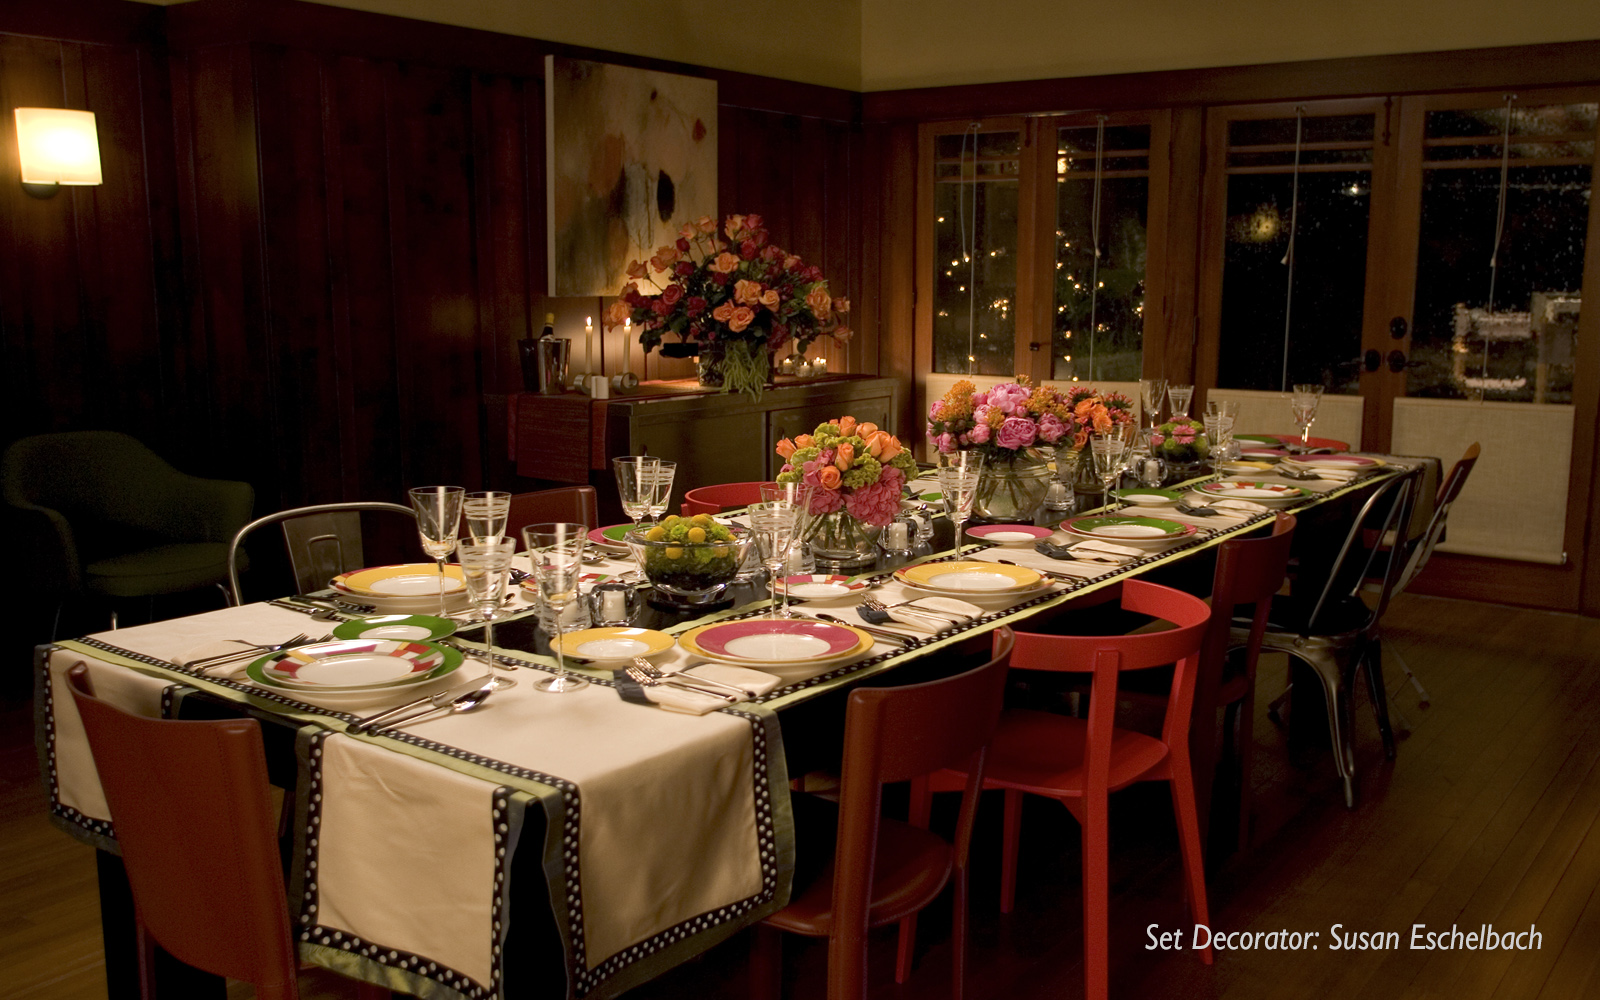 Home_dining_table1.jpg